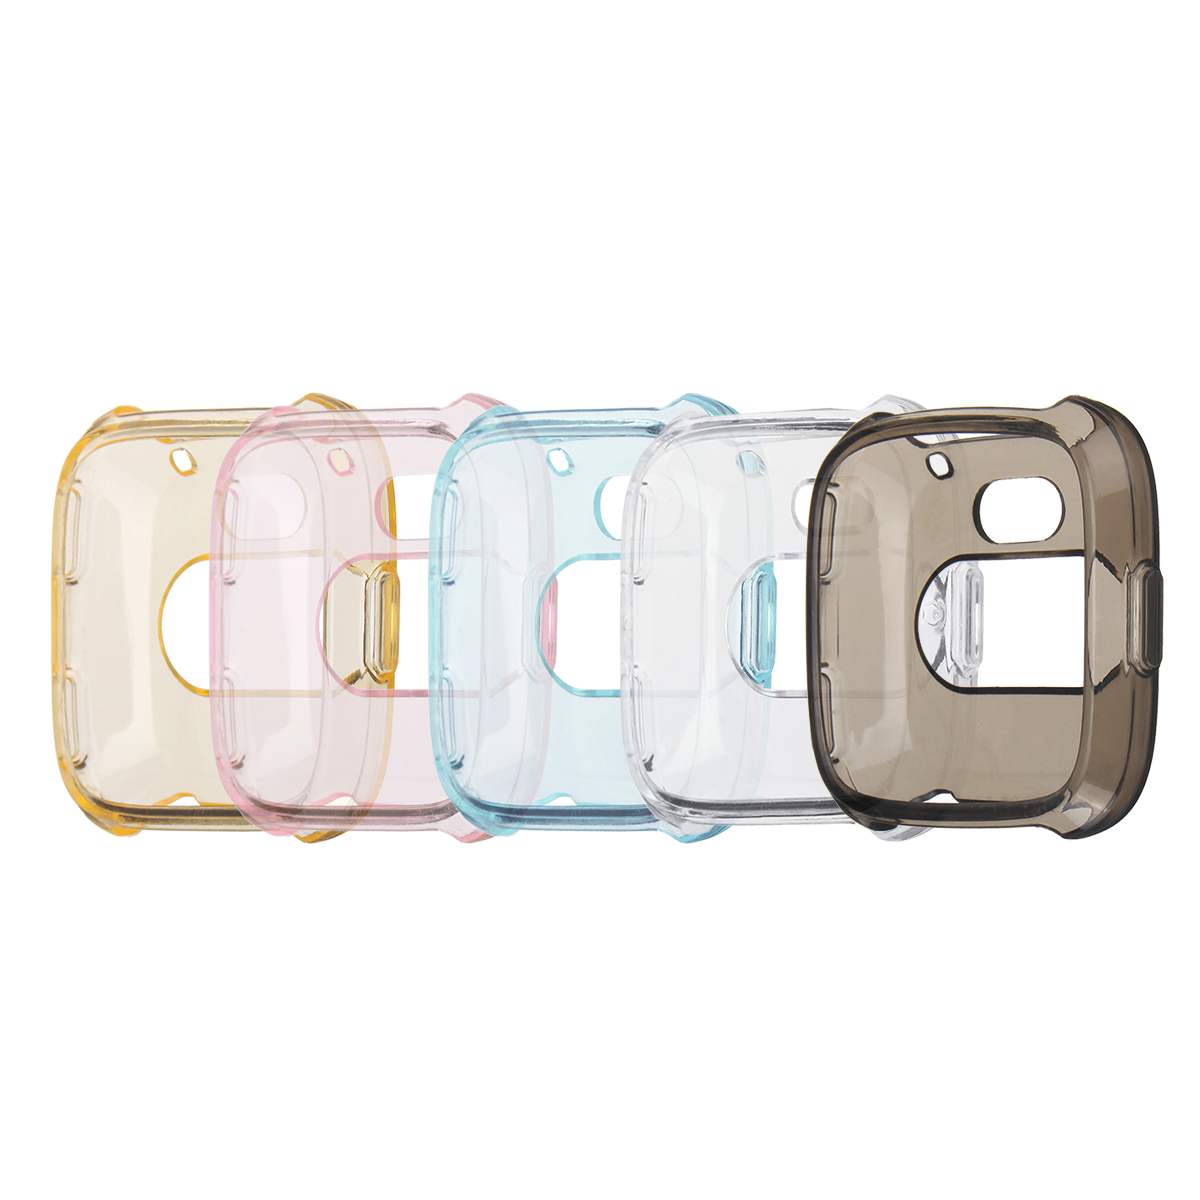 Bakeey Silicone Transparent TPU Case Cover Watch Cover Protective Skin Shell for Fitbit Versa Watch